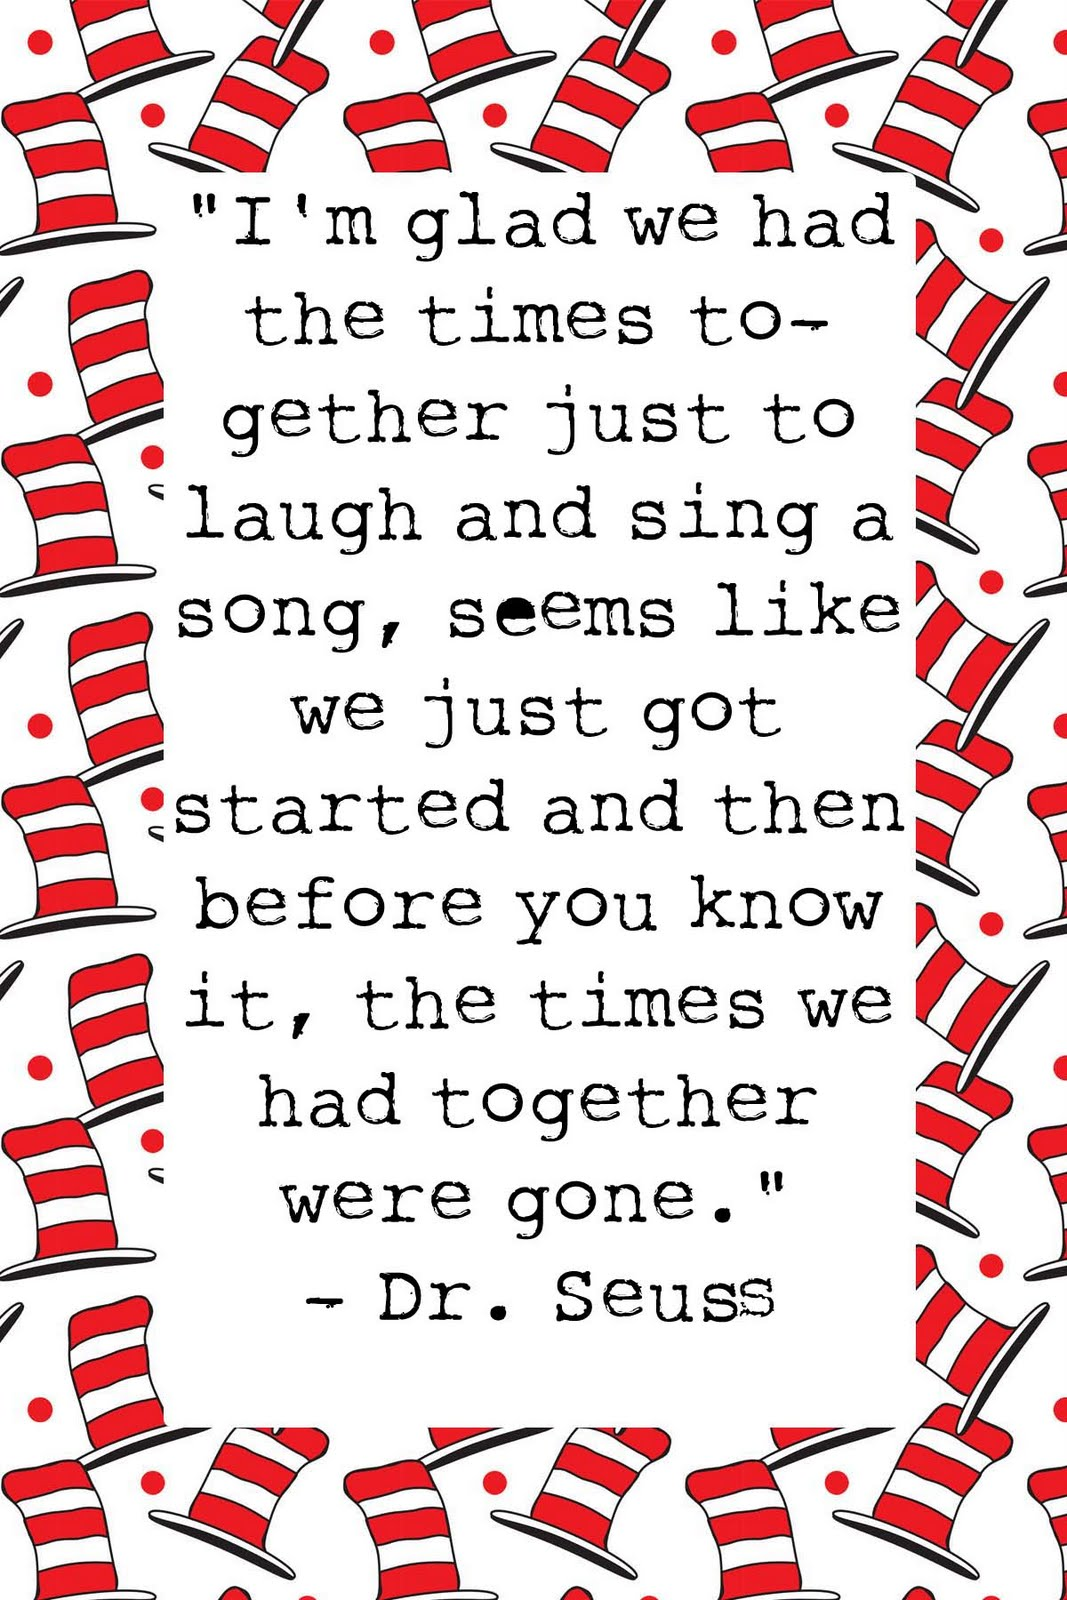 Dr Seuss Love Quotes Cute Love Poems Dr Seuss Dr Seuss Quotes Love Pretty Image Ondr